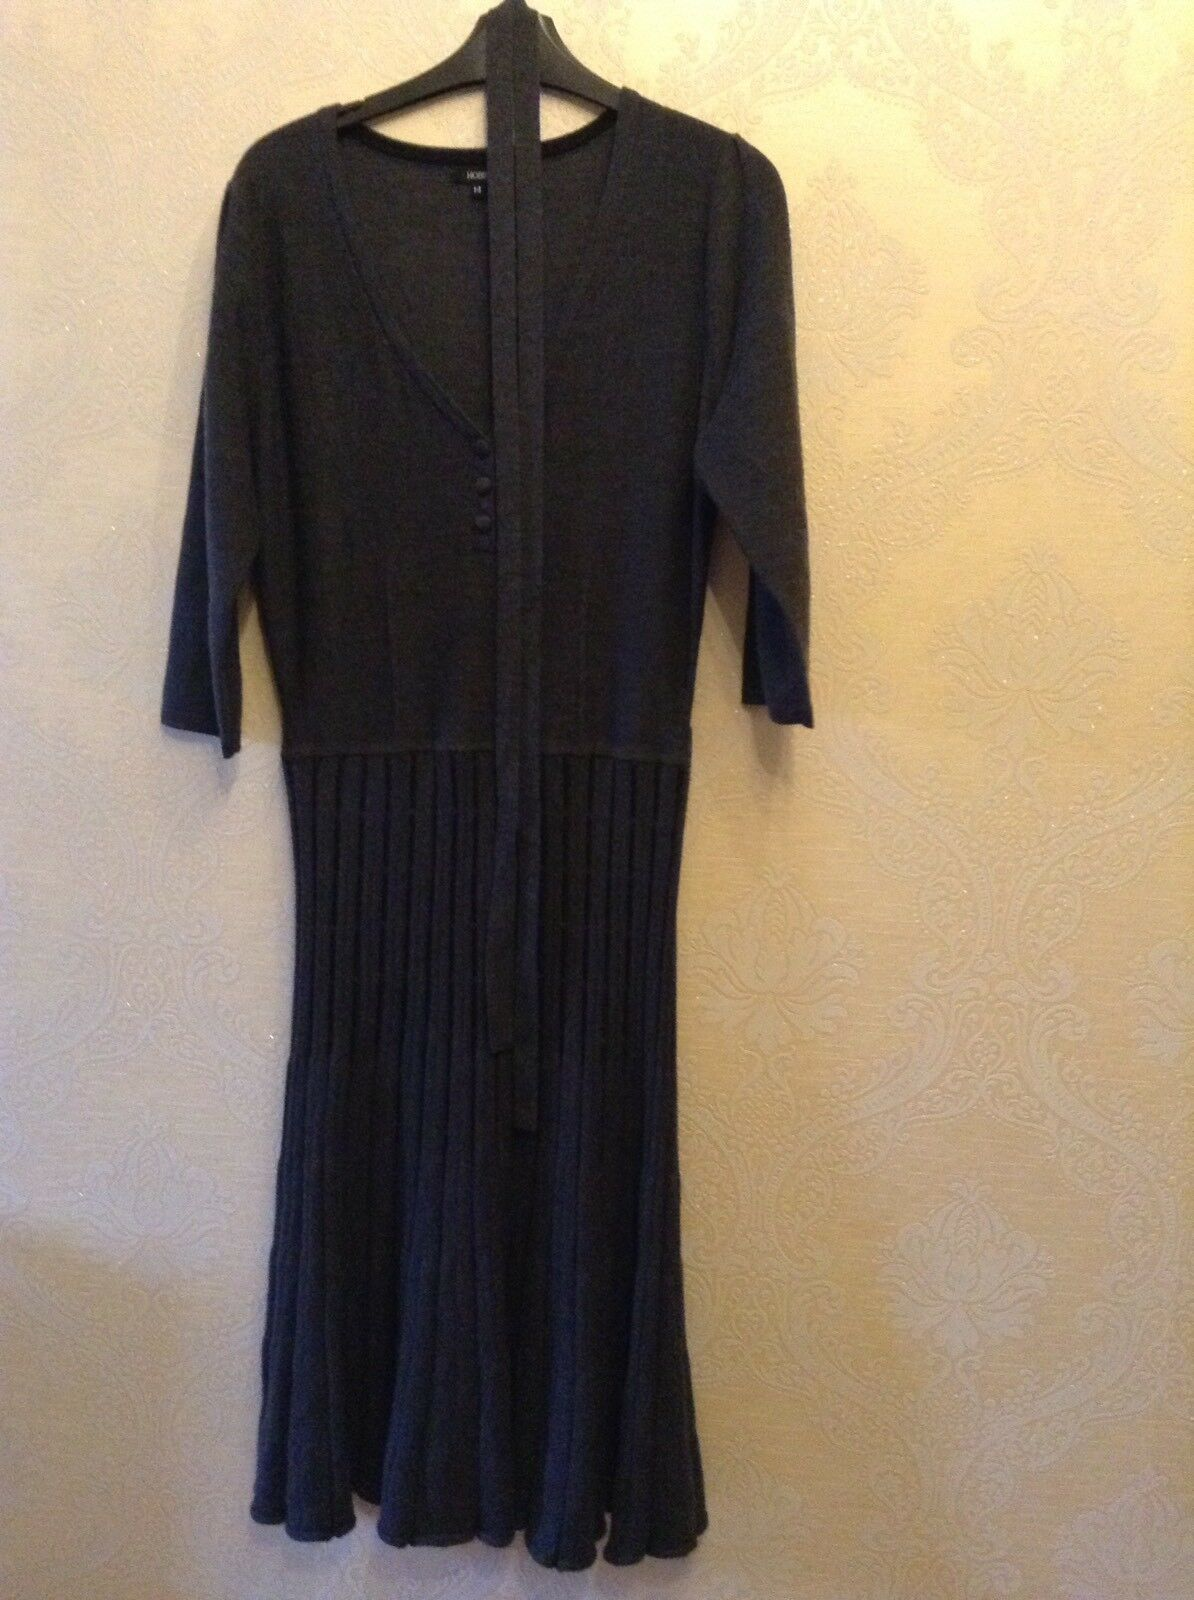 Hobbs Size 14 Dark Grey   Charcoal Wool Ladies Dress, 3 4 Length Sleeves